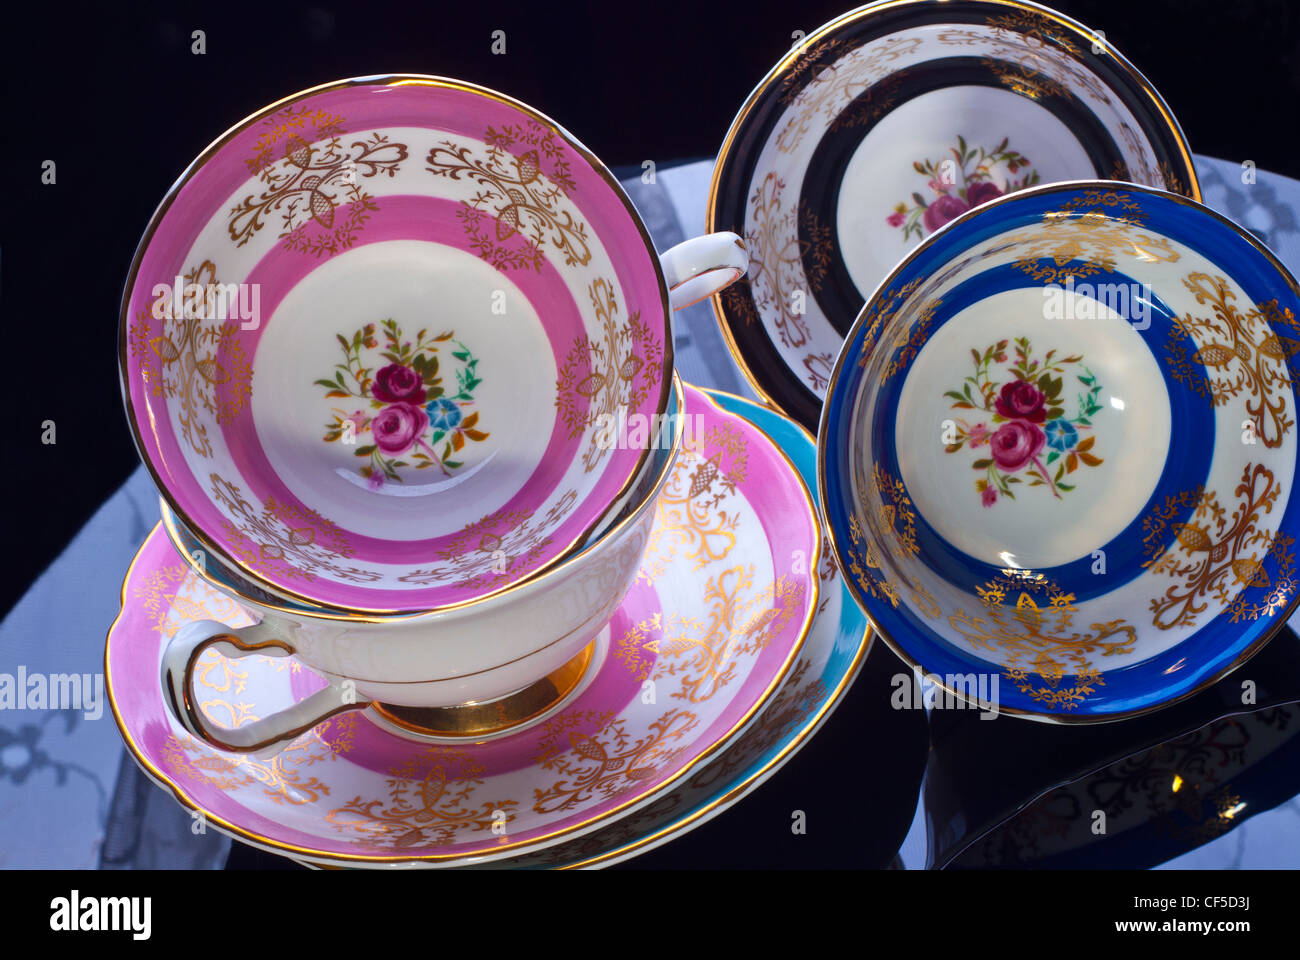 Beautiful colourful best china Cups & Saucers displayed on glass table ready for Sunday afternoon tea with friends - Stock Image